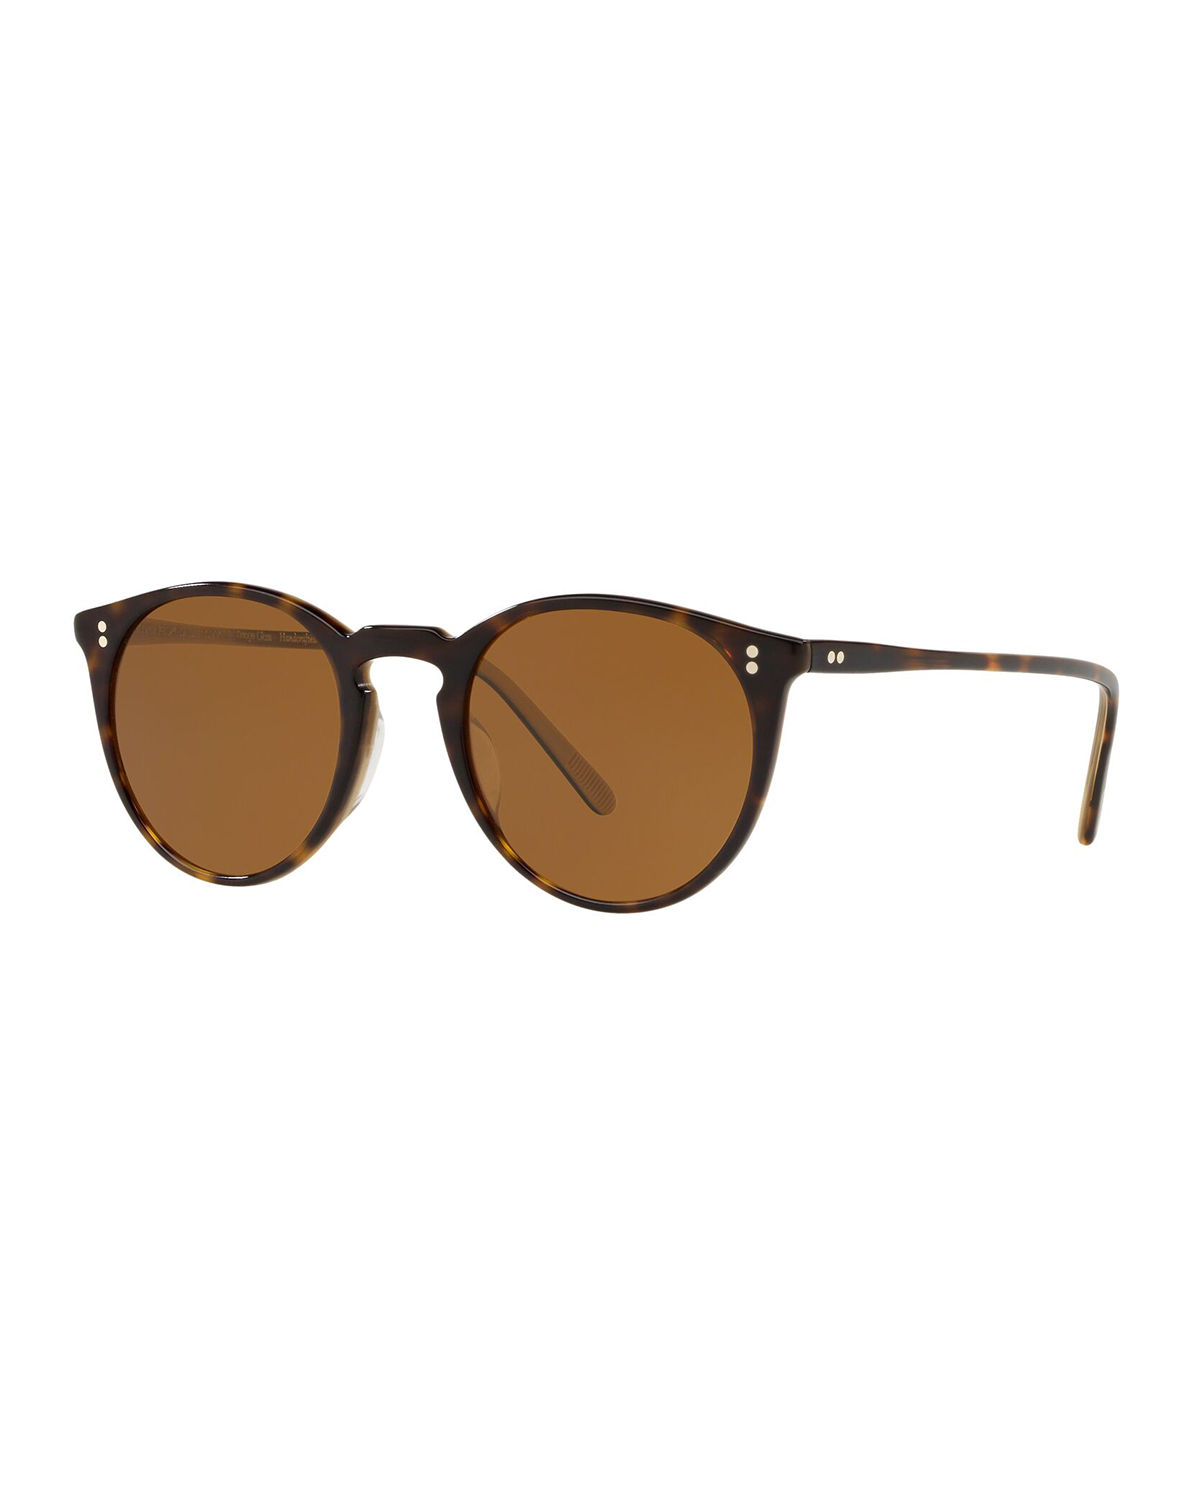 d744b303dd Oliver Peoples O Malley Round Acetate Sunglasses